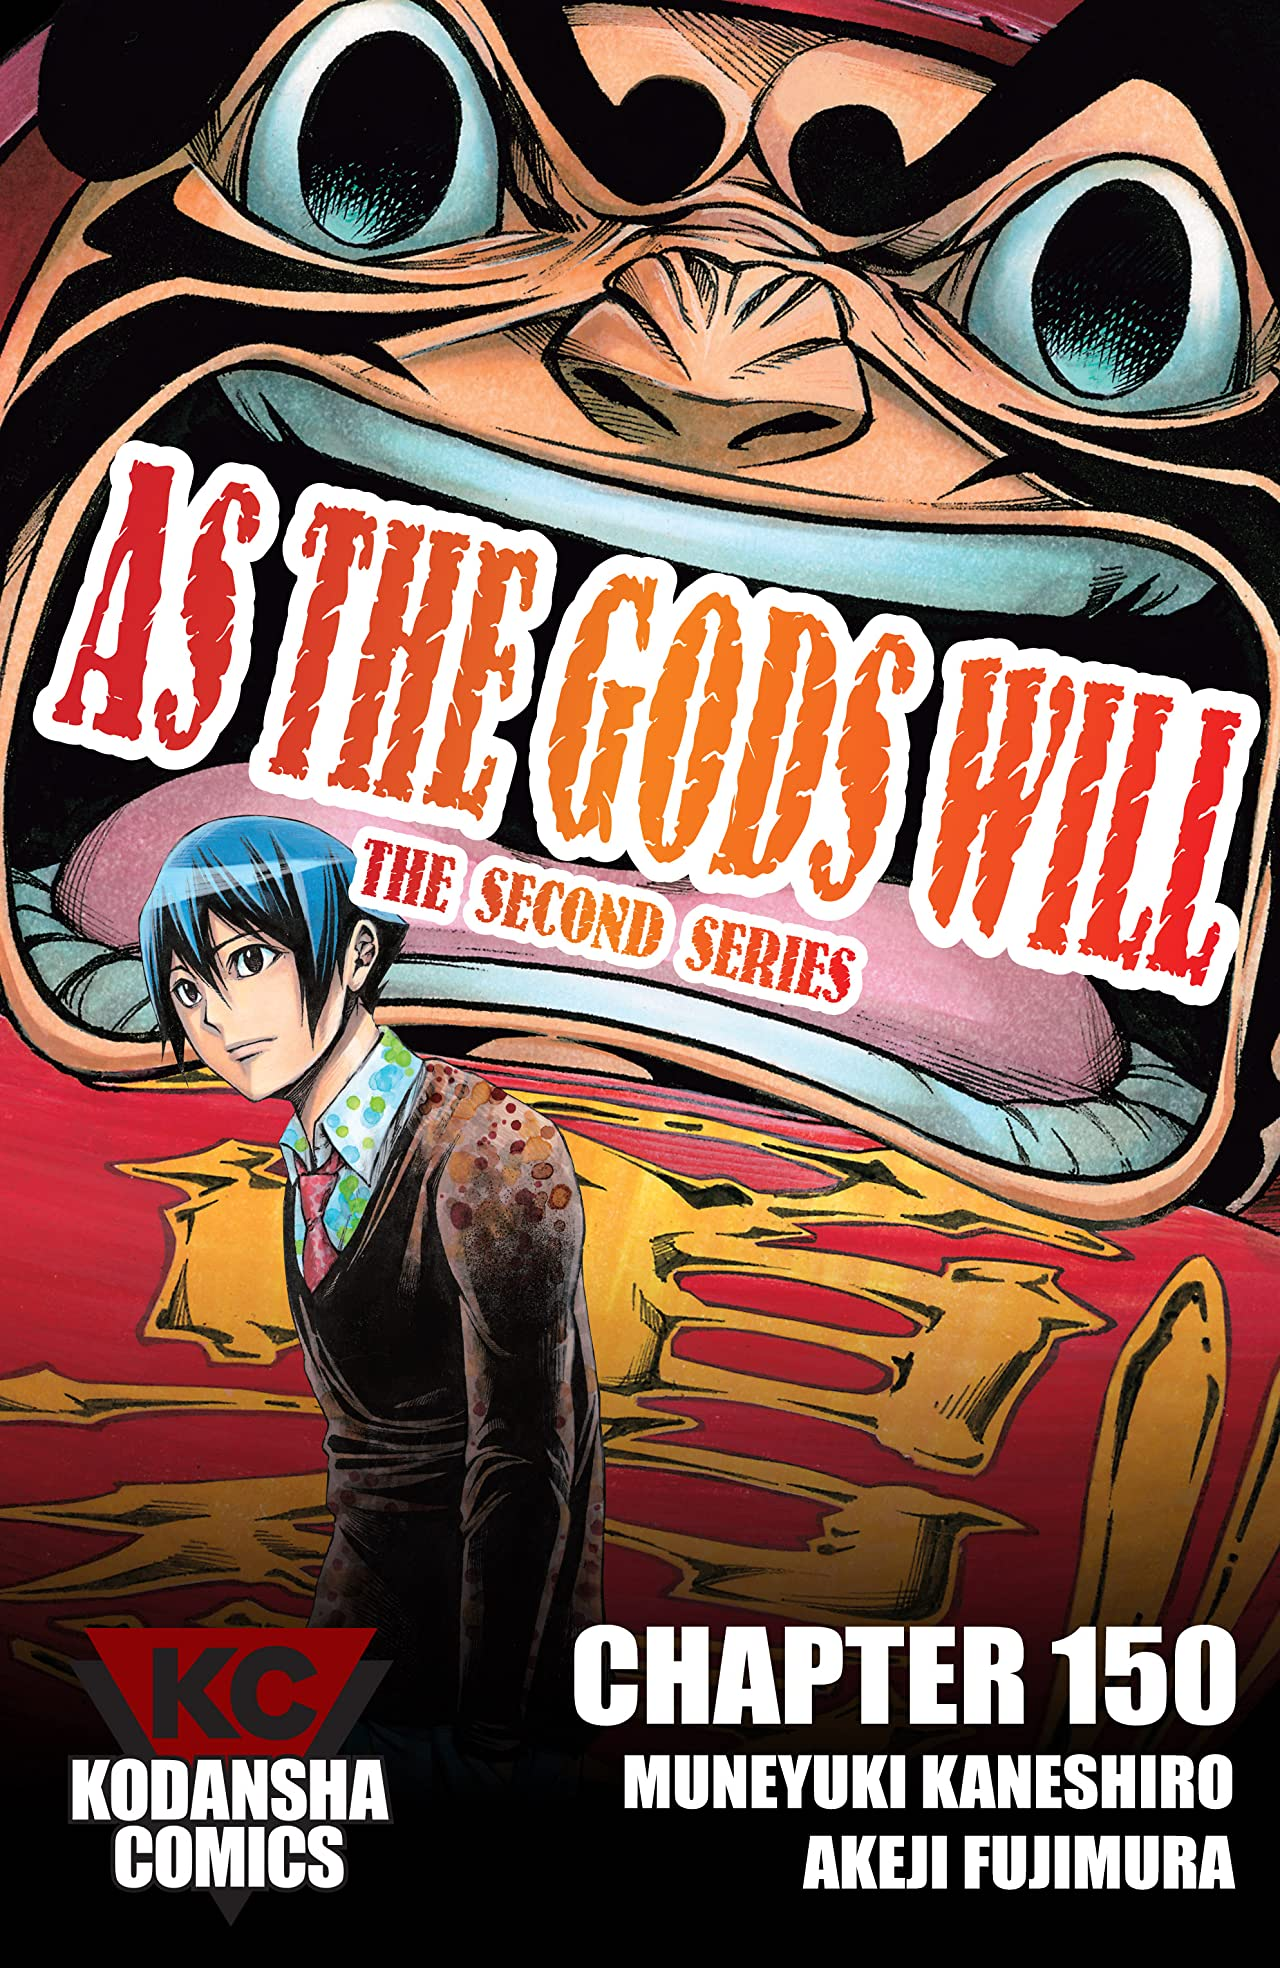 As The Gods Will: The Second Series #150